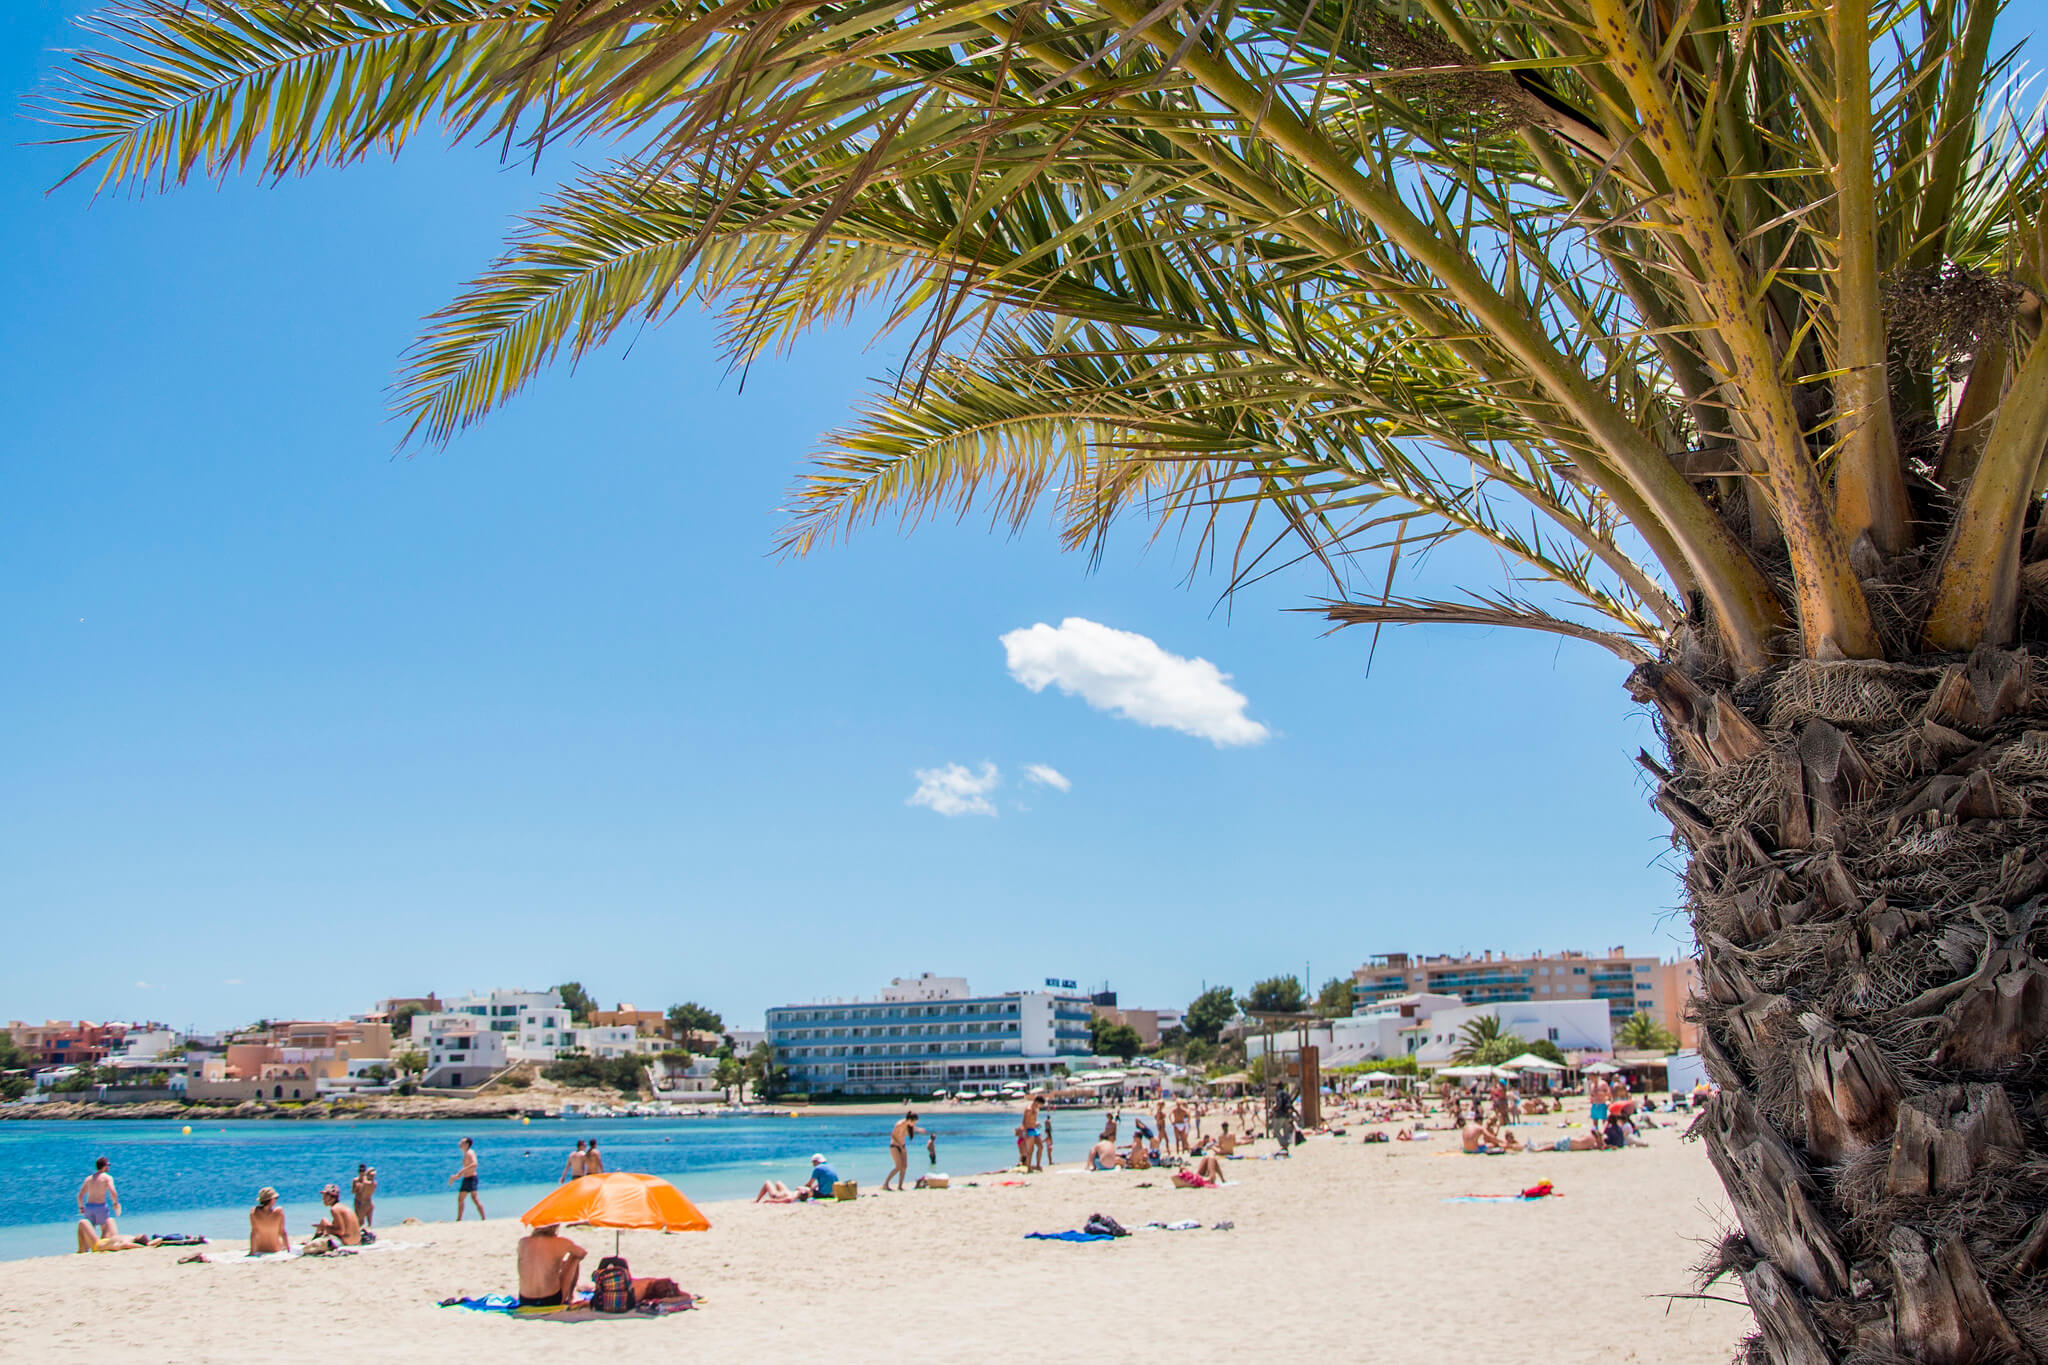 https://www.white-ibiza.com/wp-content/uploads/2020/03/ibiza-beaches-talamanca-01.jpg